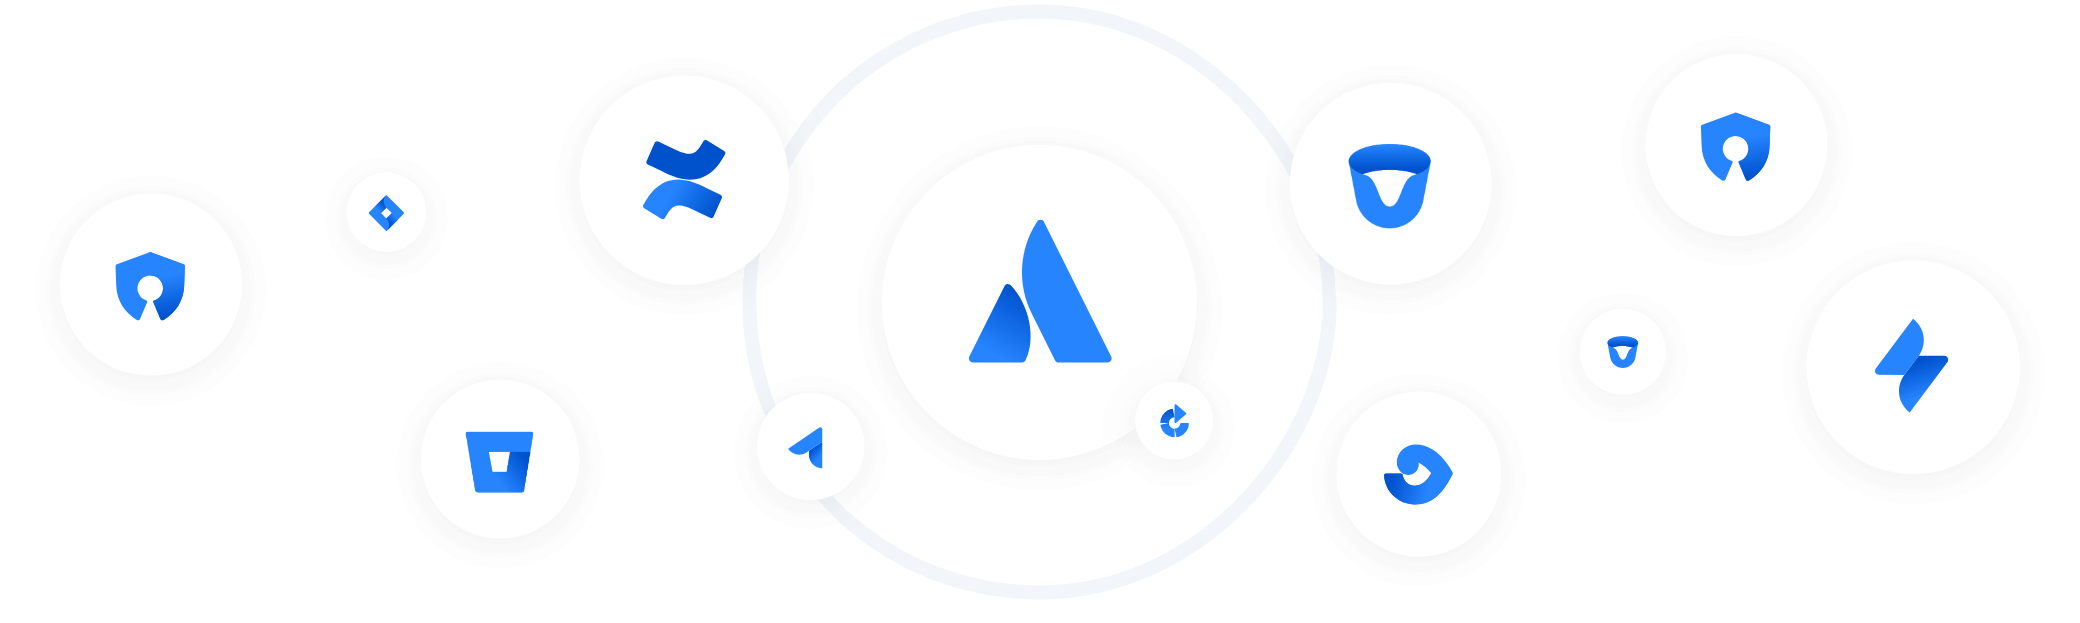 Atlassian products logos, produkty atlassian logo